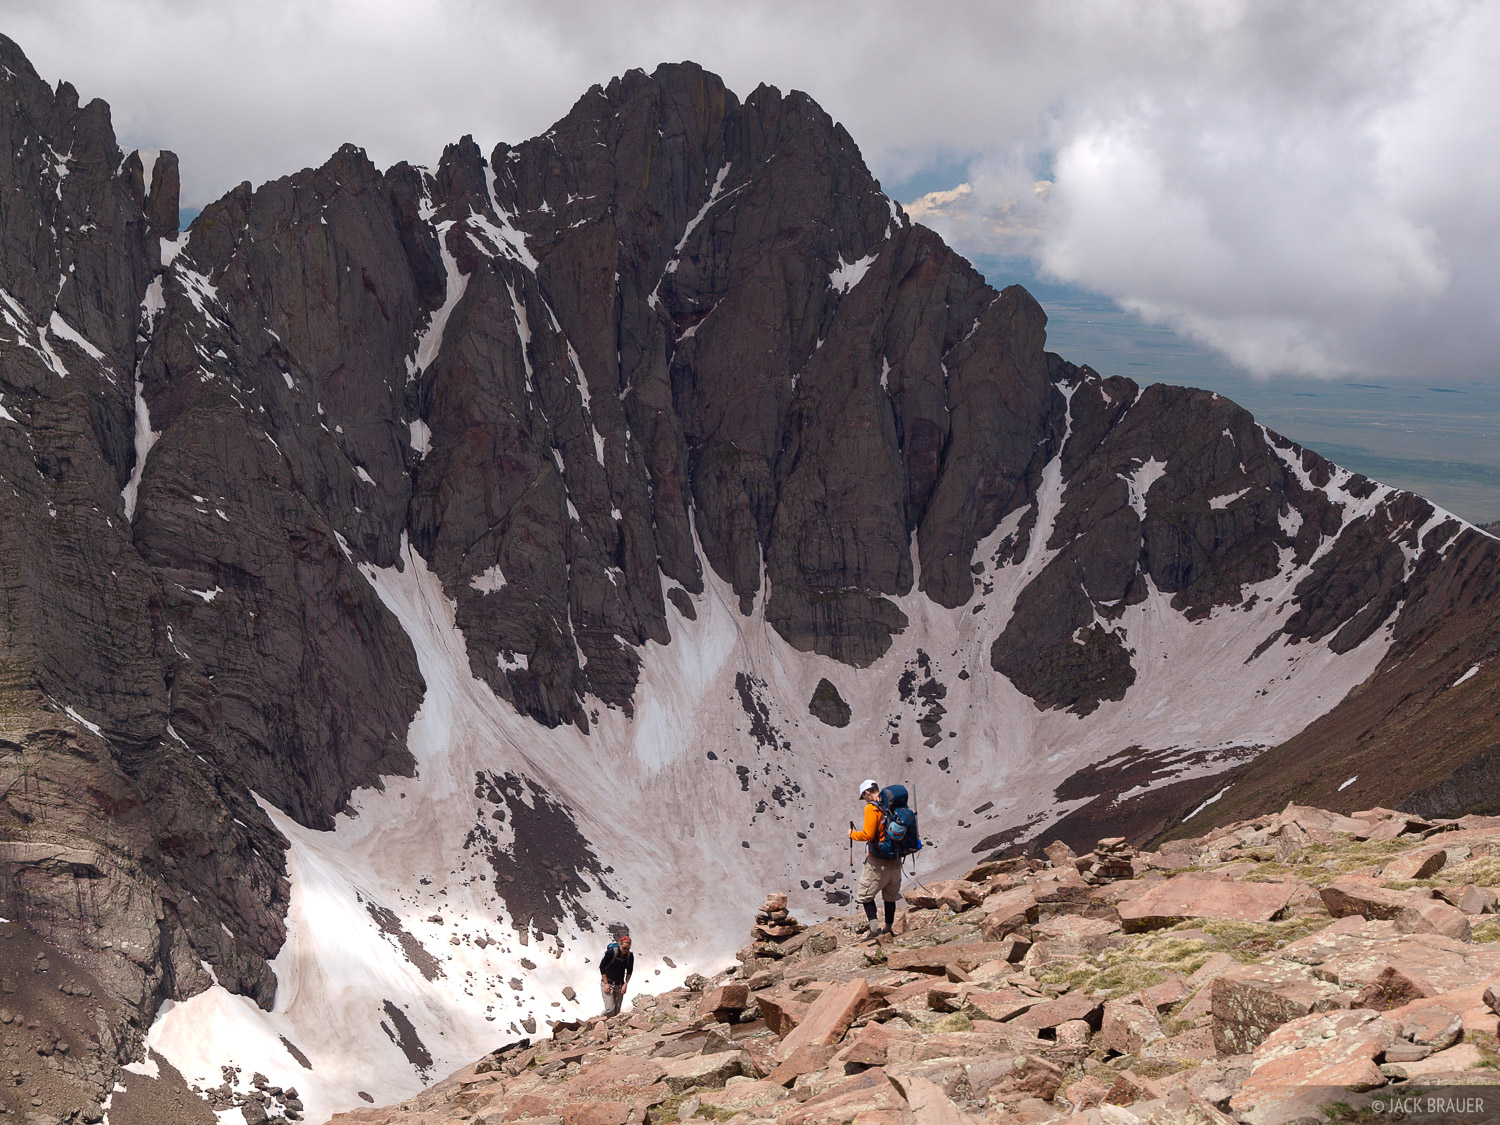 hikers, Humboldt Peak, Crestone Peak, Sangre de Cristos, Colorado, Sangre de Cristo Wilderness, photo